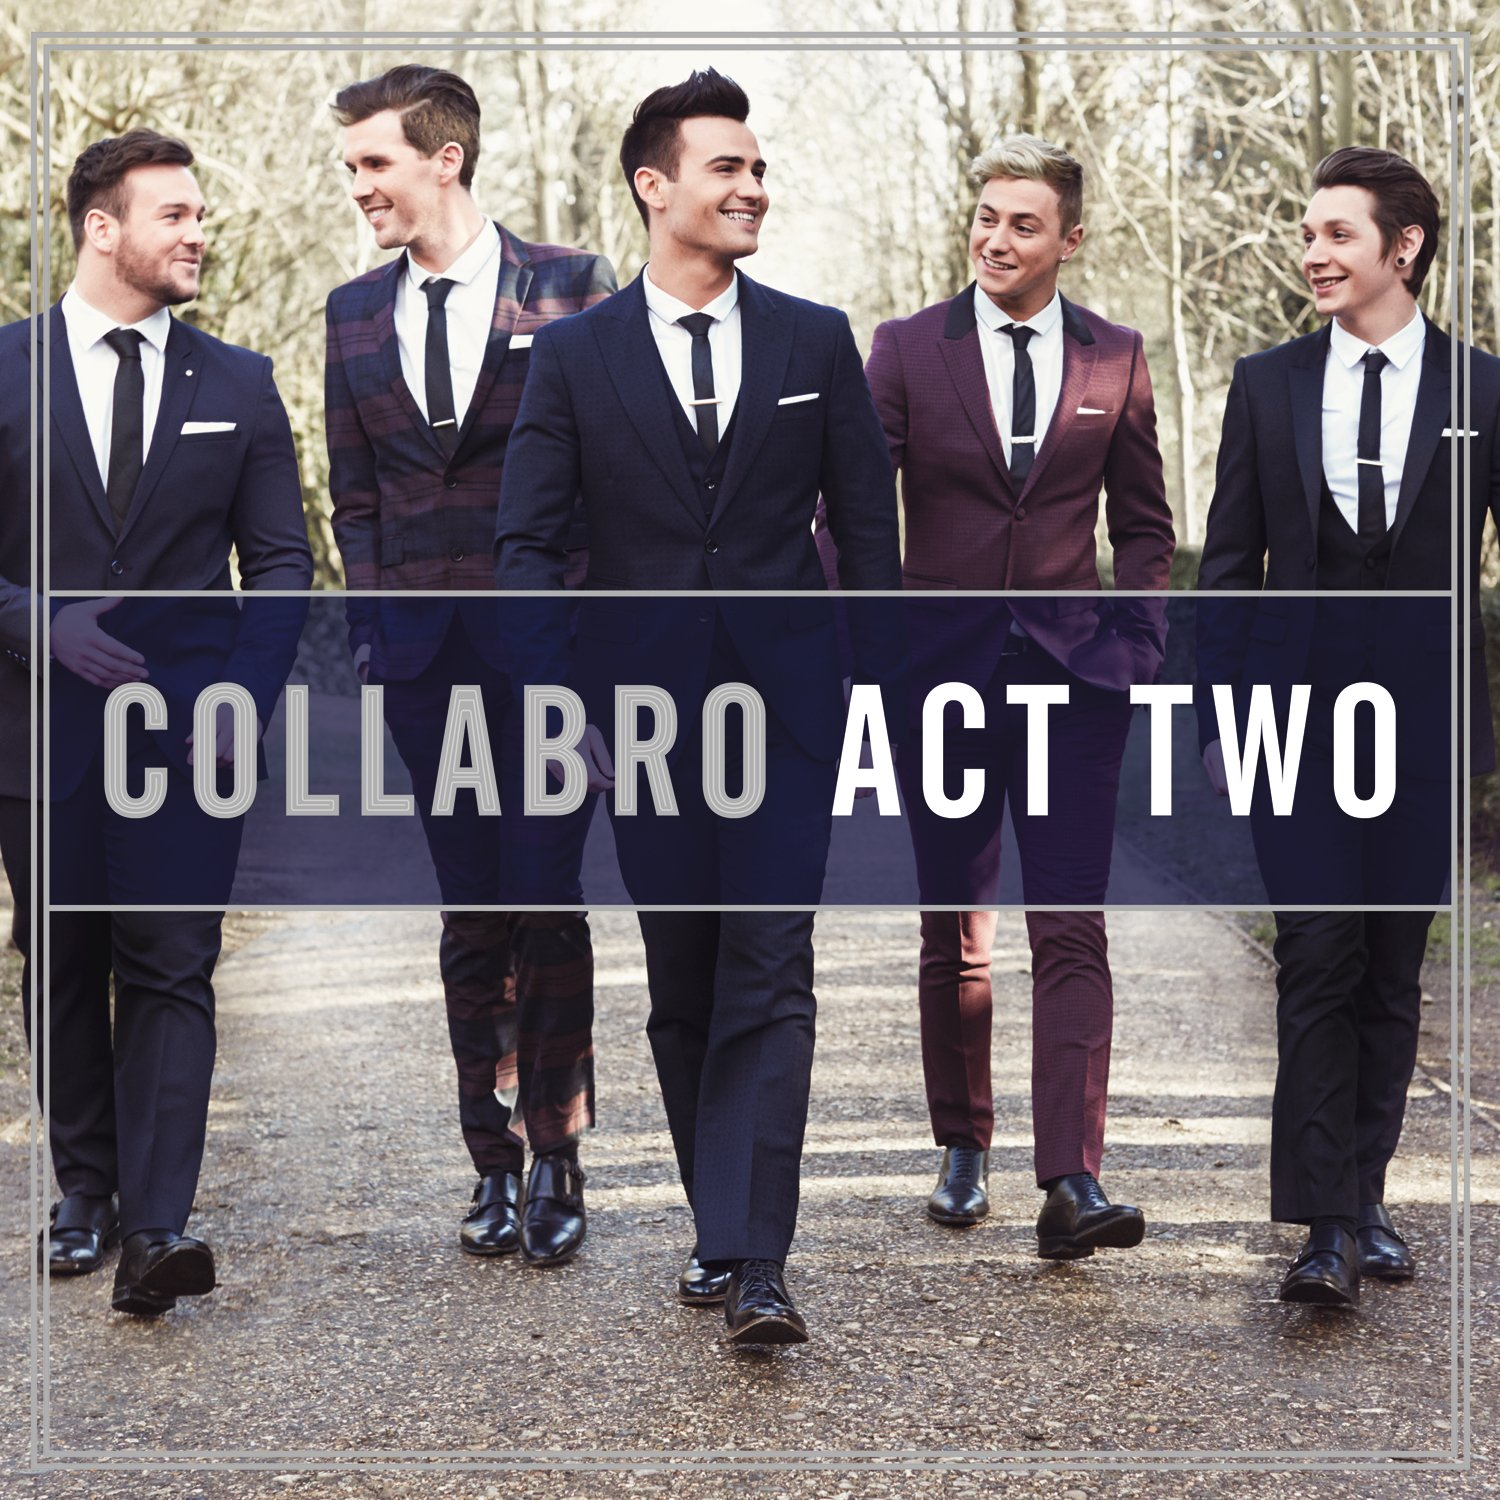 Collabro Act Two by Masterworks